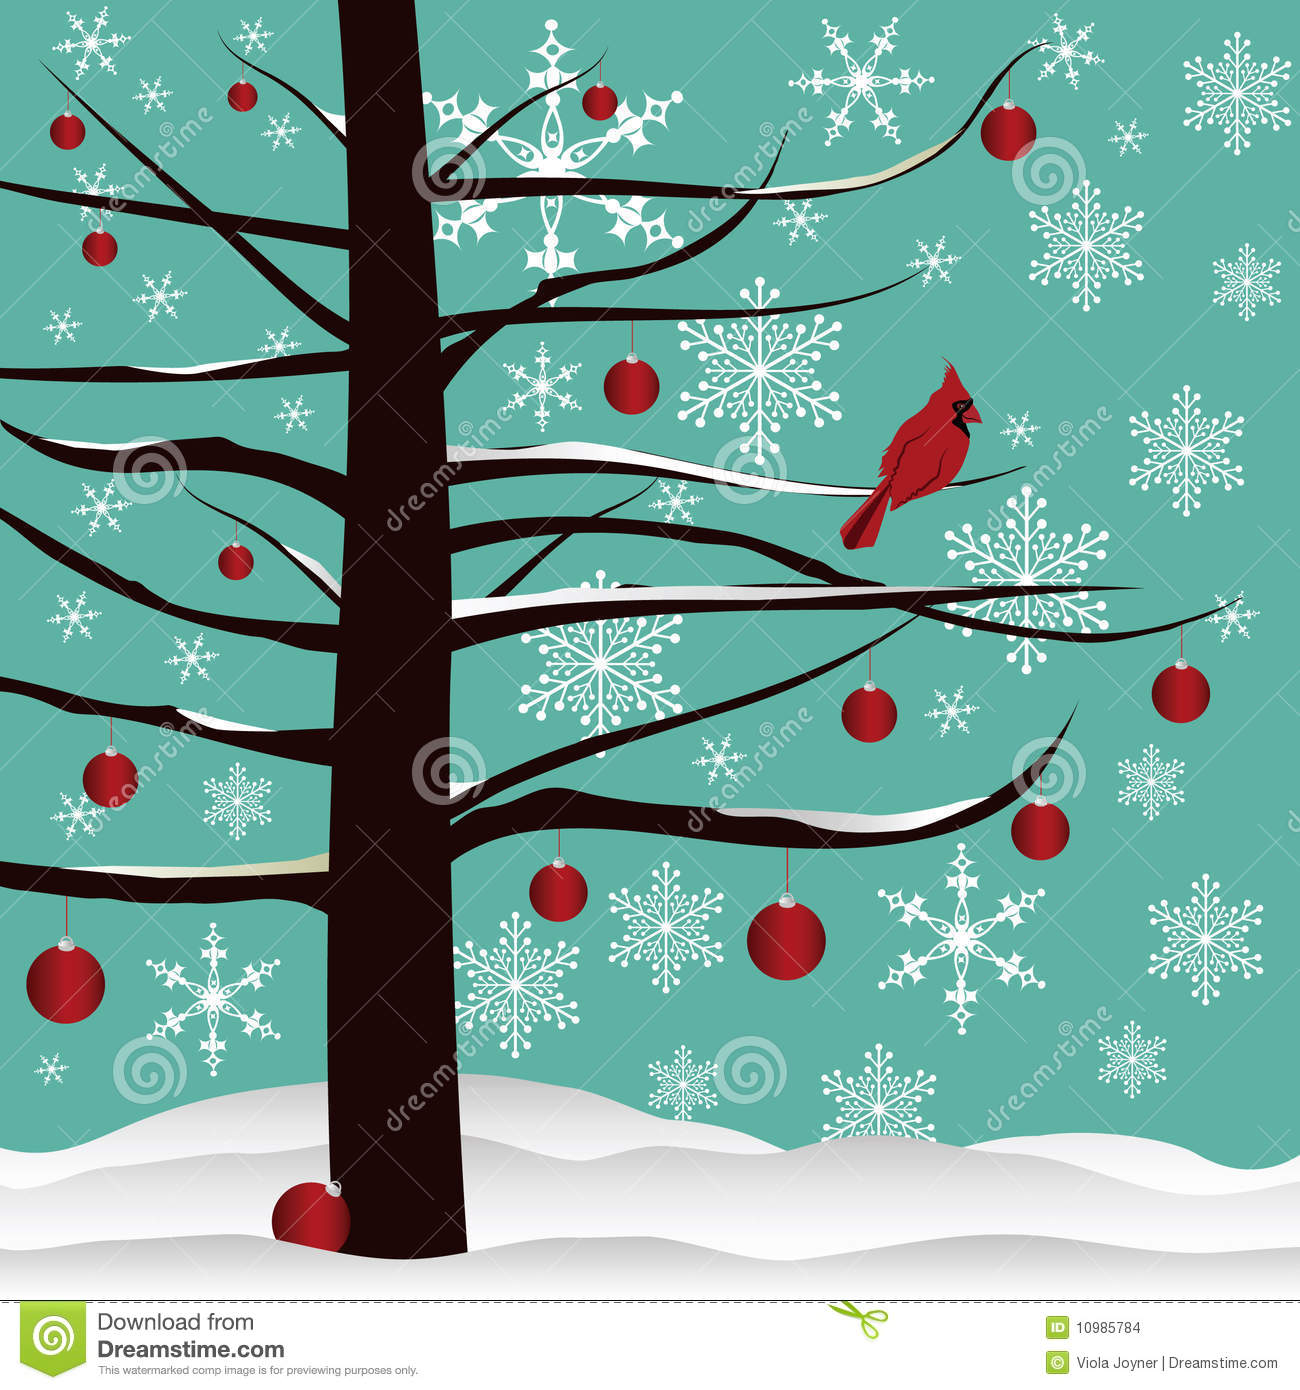 christmas tree and red cardinal background - Red Cardinal Christmas Decorations